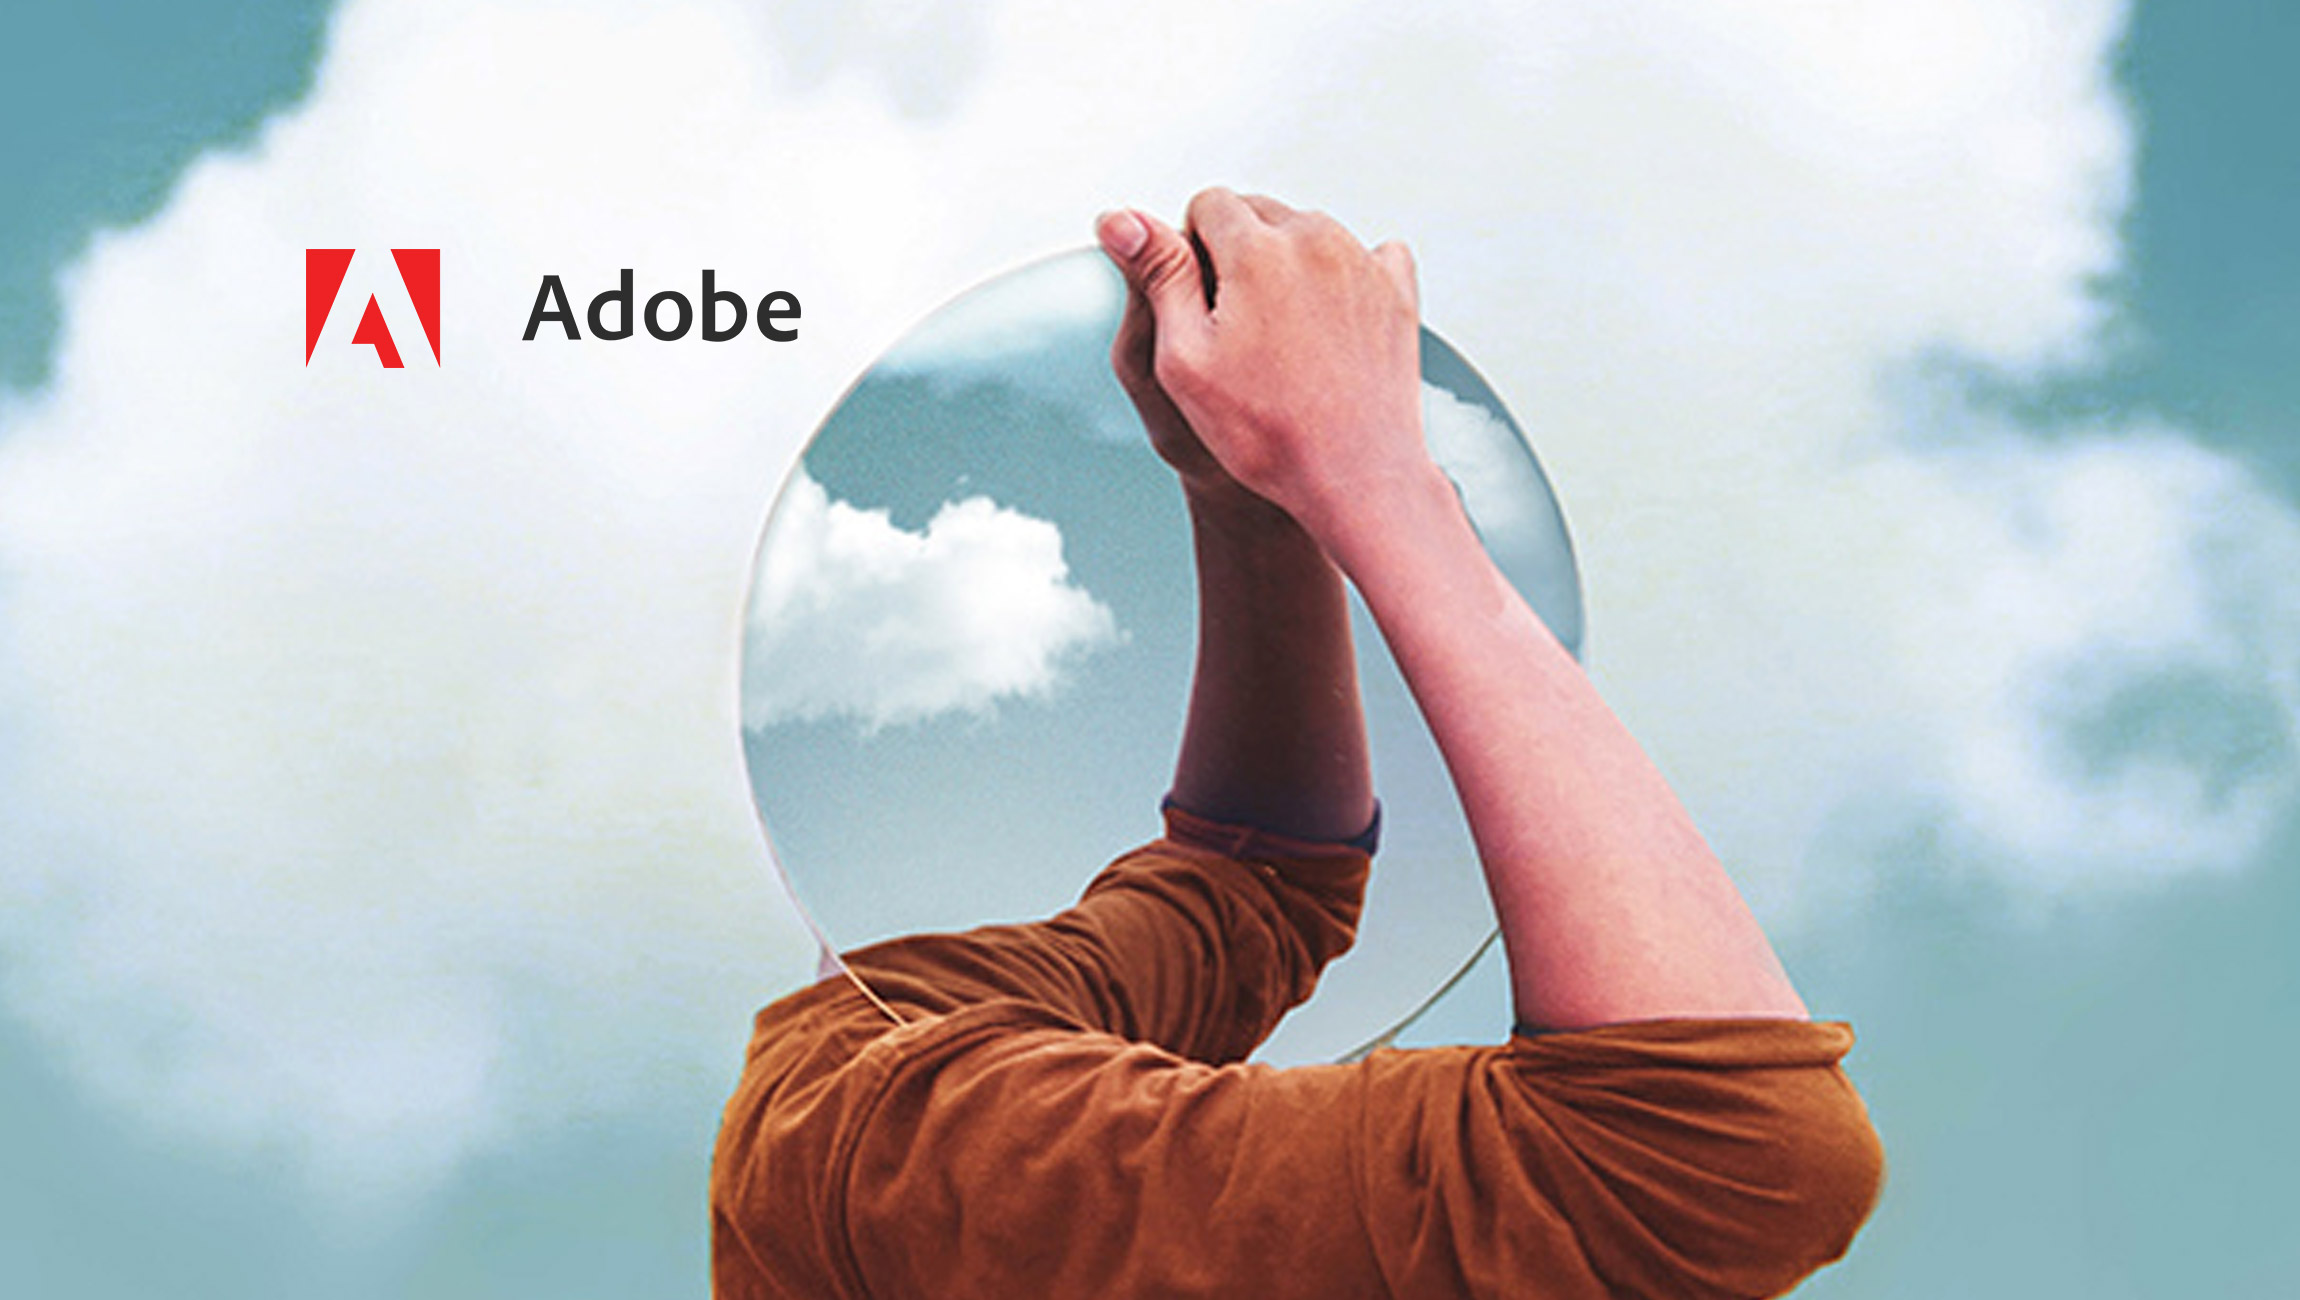 Adobe Launches 'Adobe Sign' to Digitally Transform Small Businesses